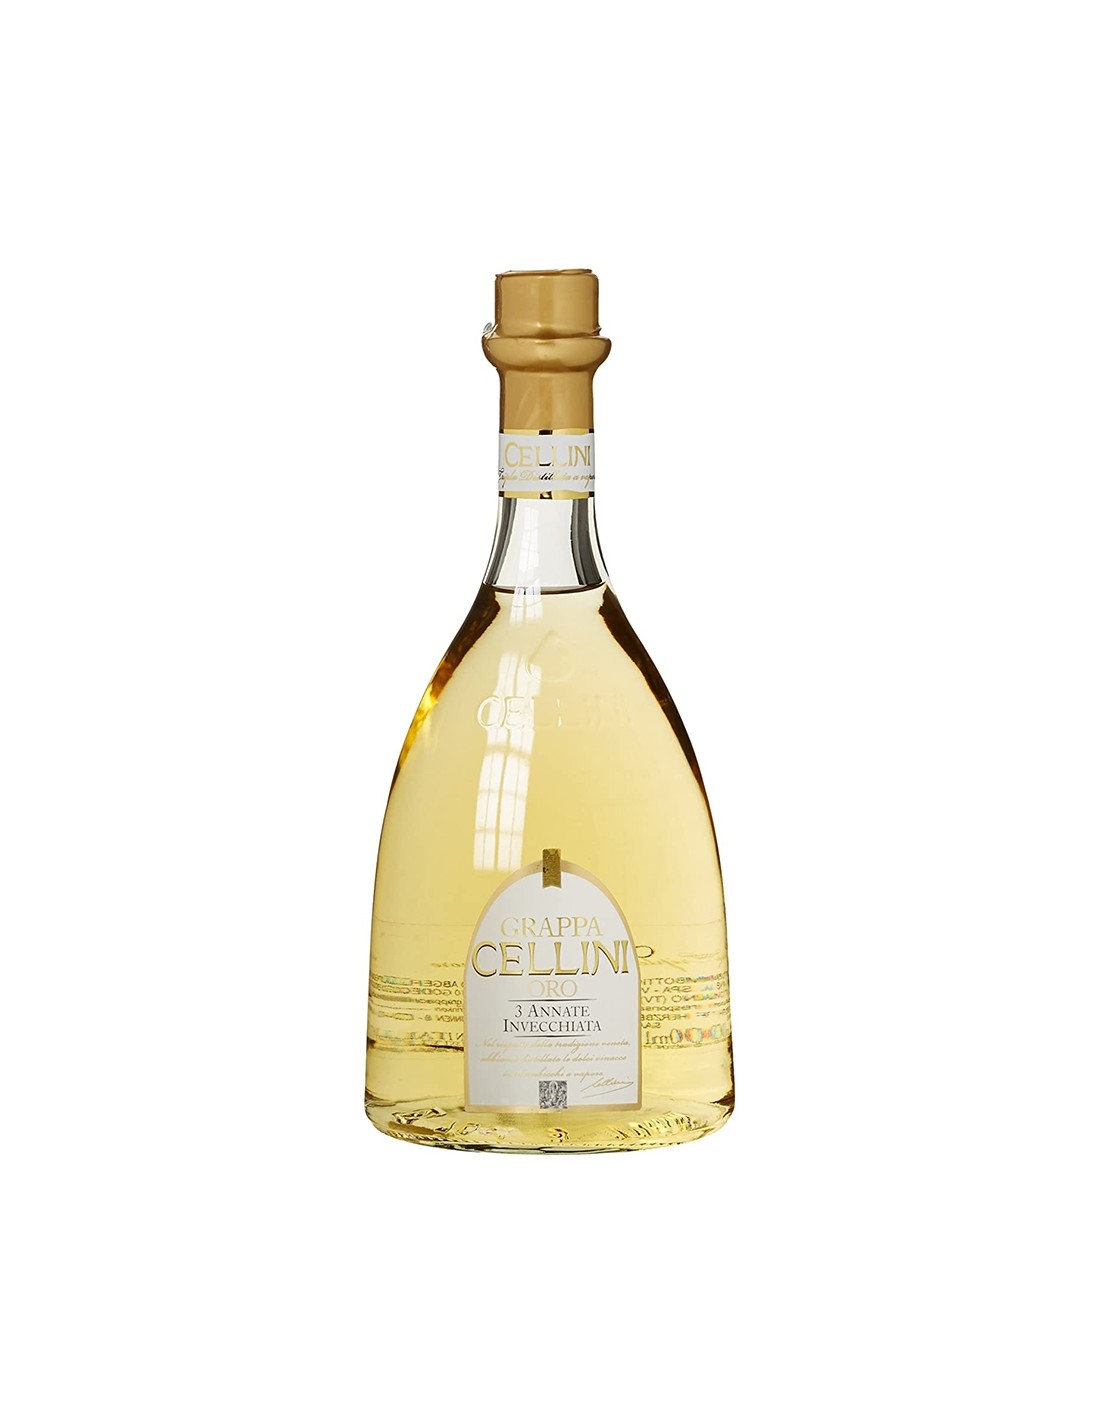 Bautura traditionala Grappa Cellini Oro, 38% alc., 0.7L, Italia